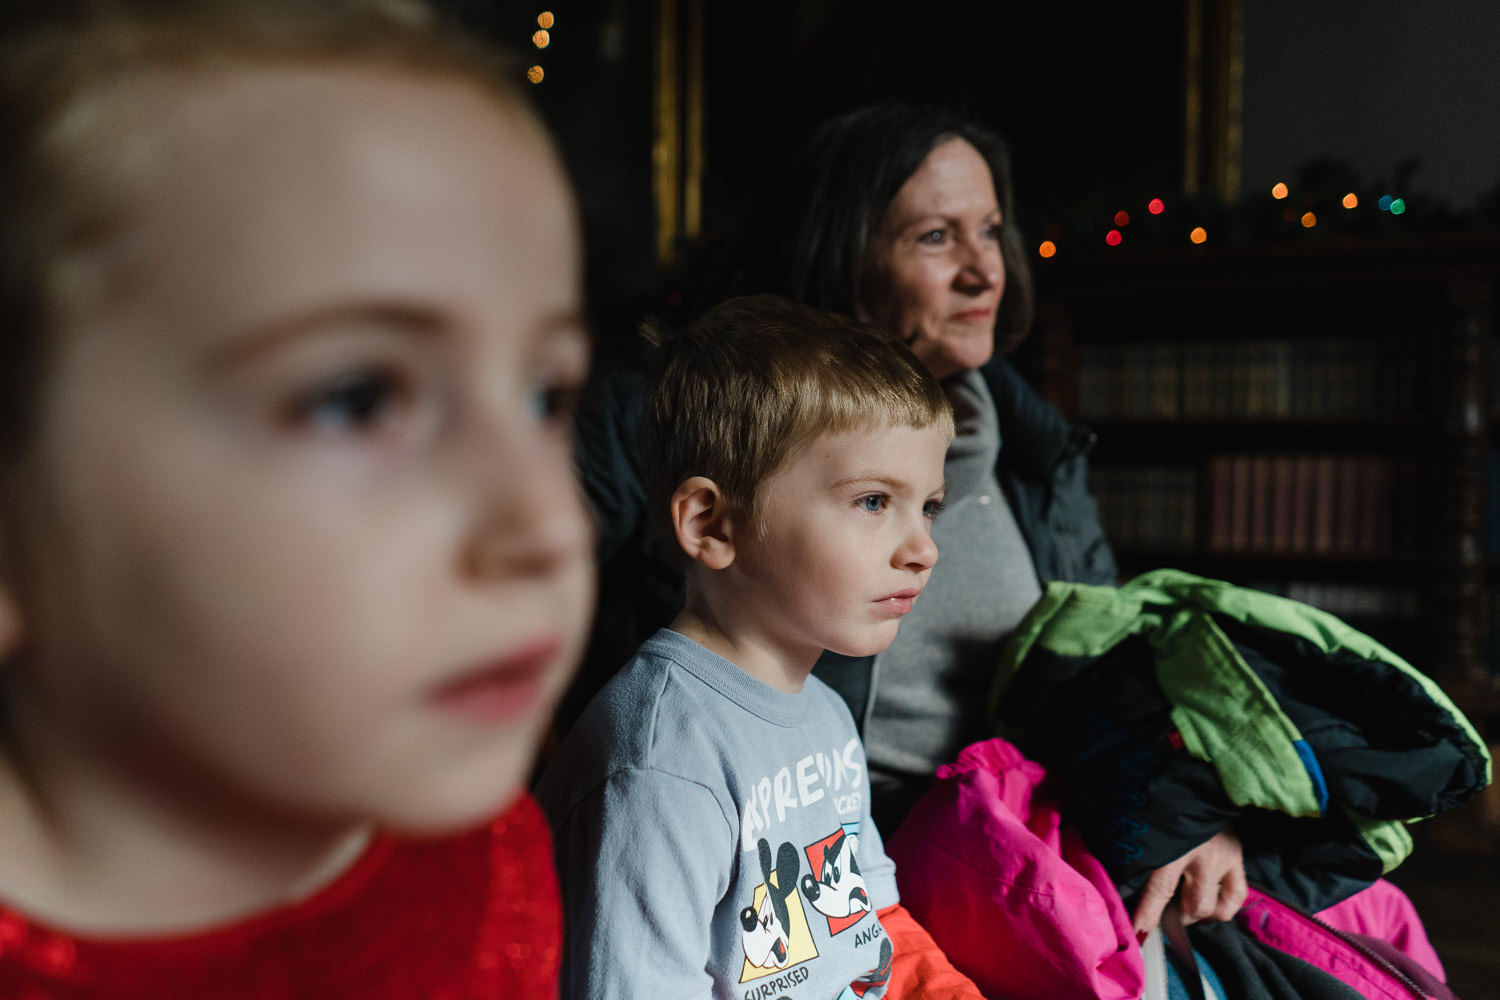 A family watched a pianist at Coe House.